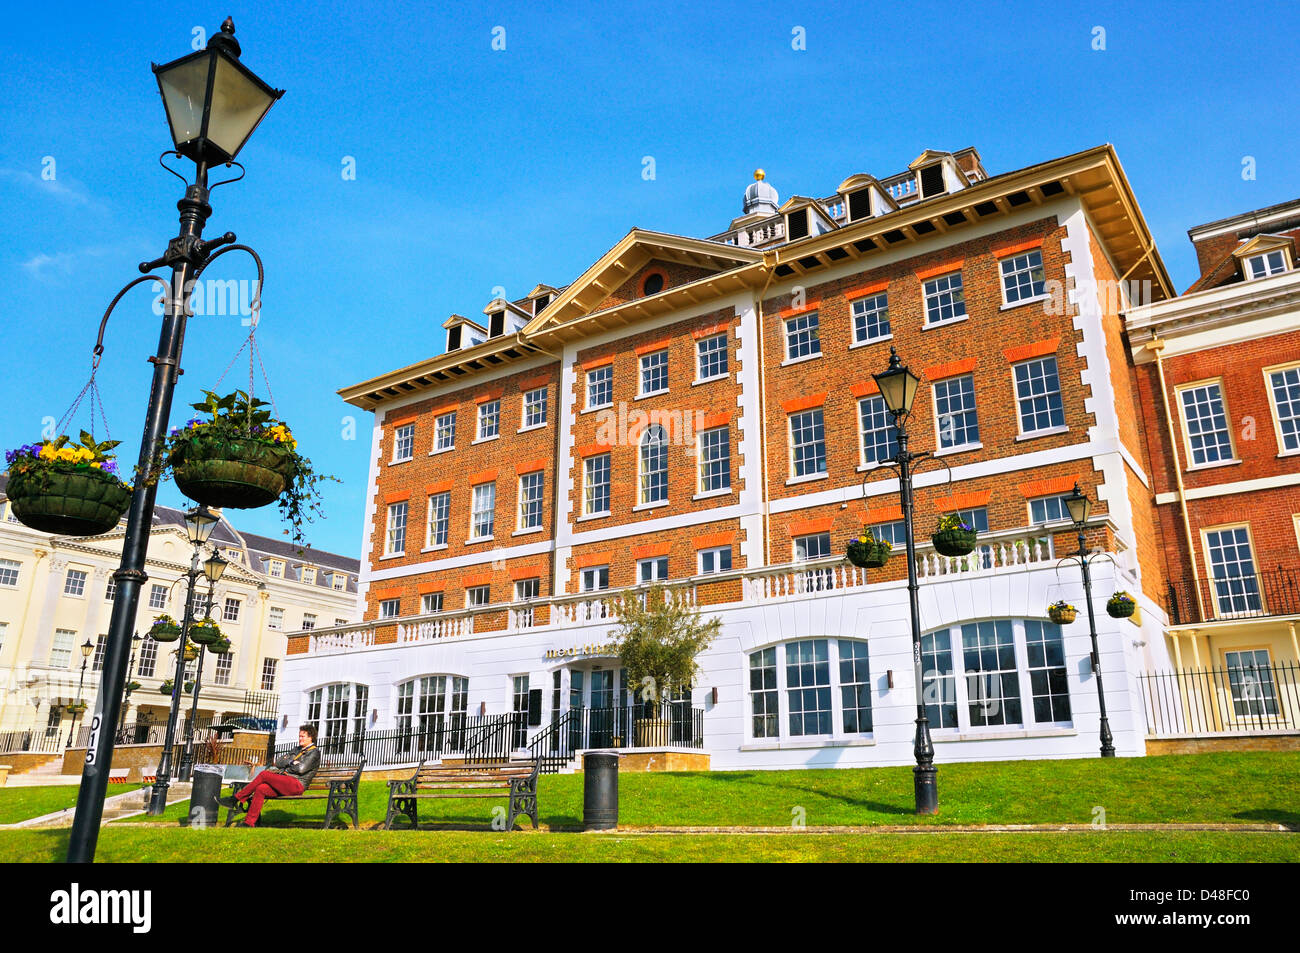 Med Kitchen, Heron Square, Richmond upon Thames, Greater London, England, UK - Stock Image